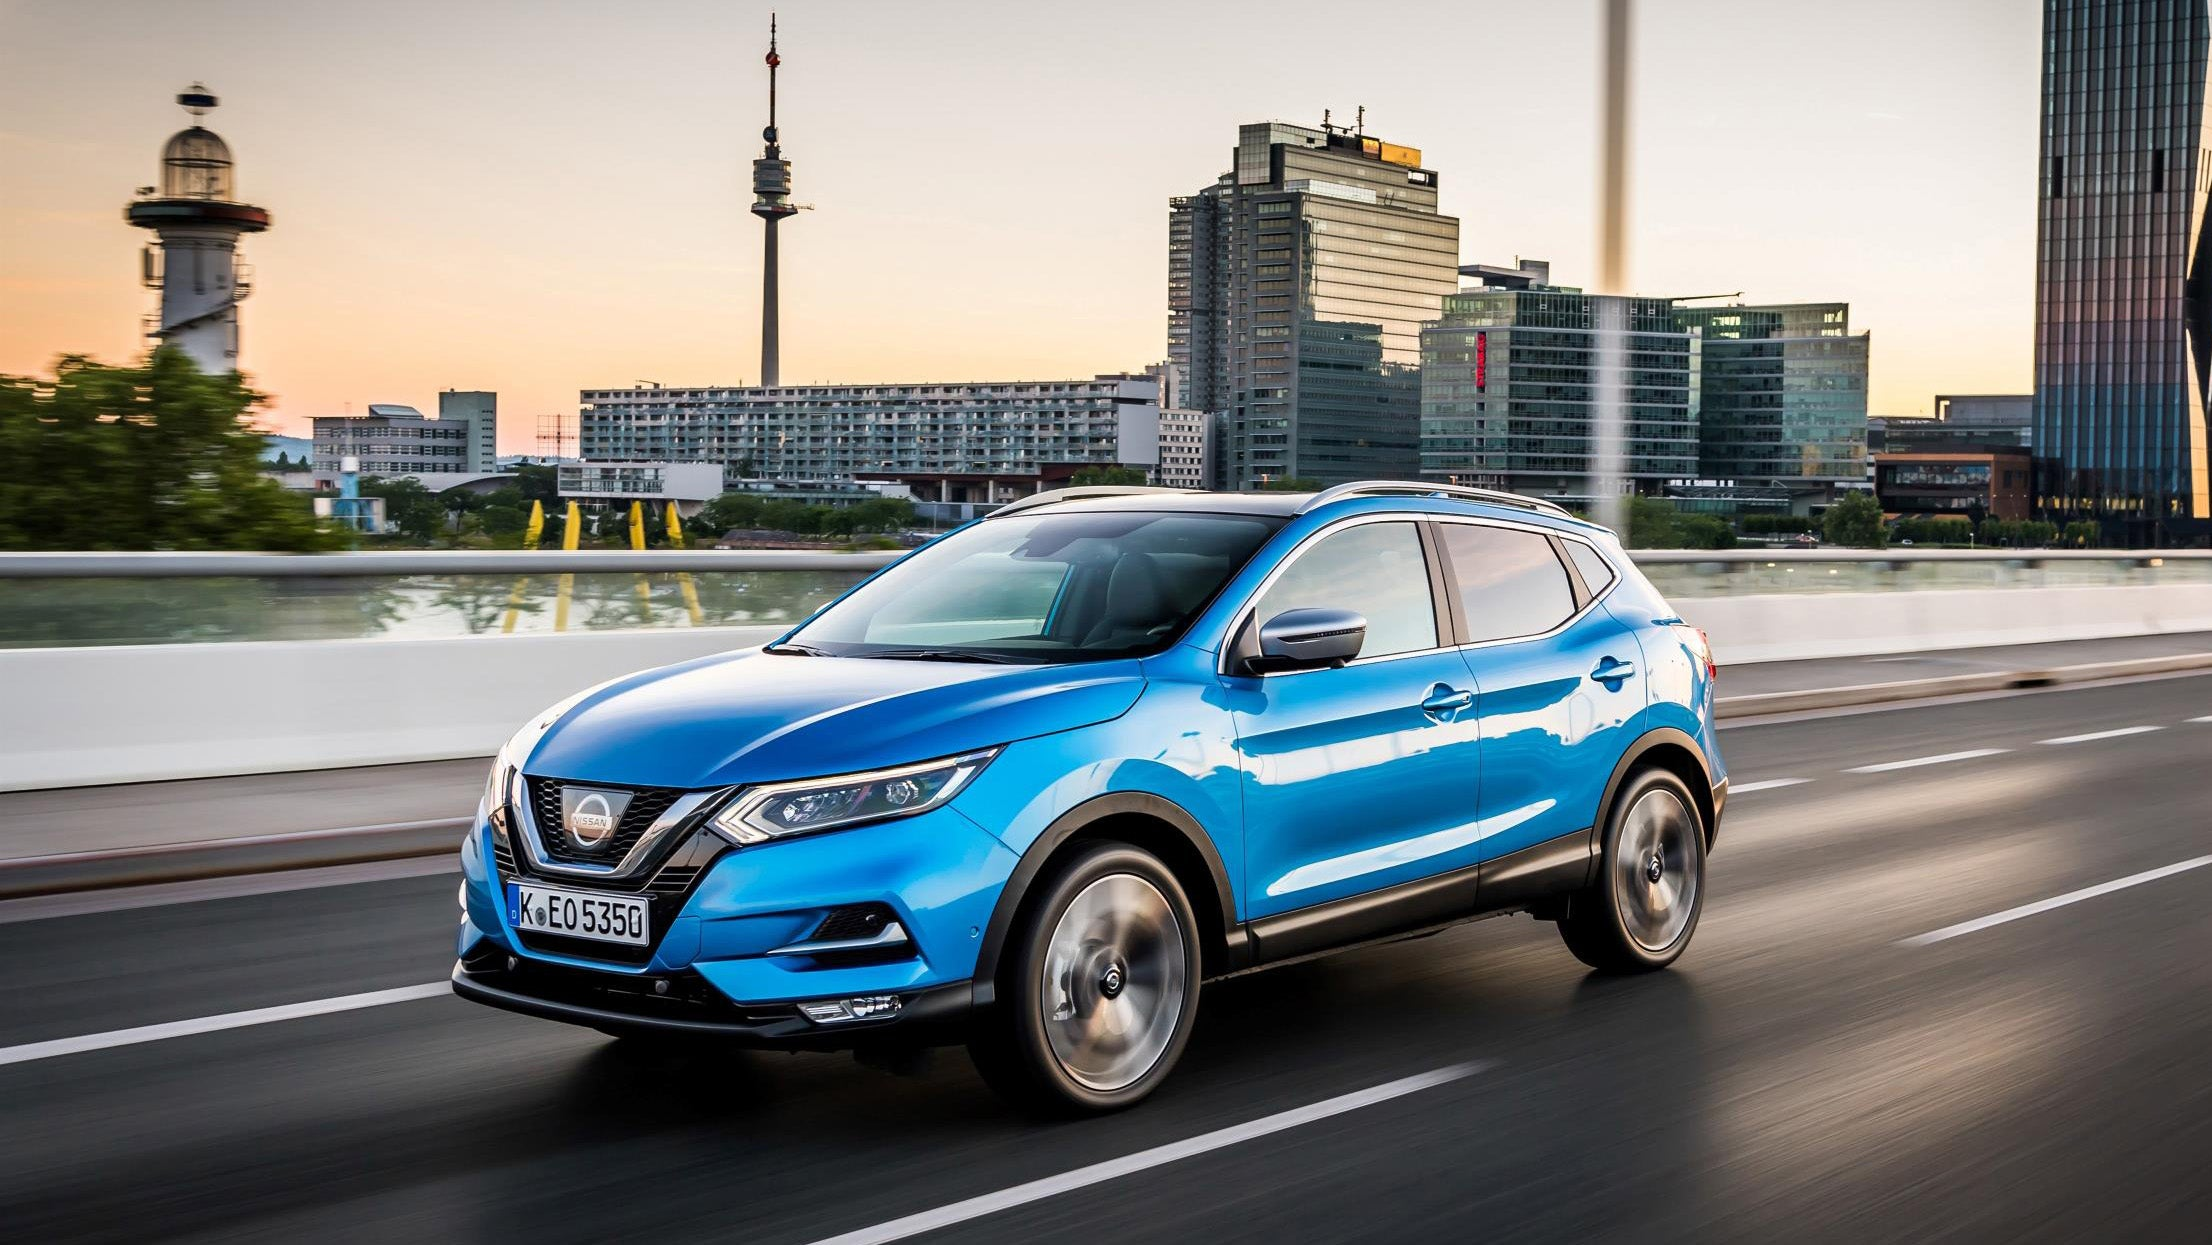 Nissan Qashqai Review | Trusted Reviews